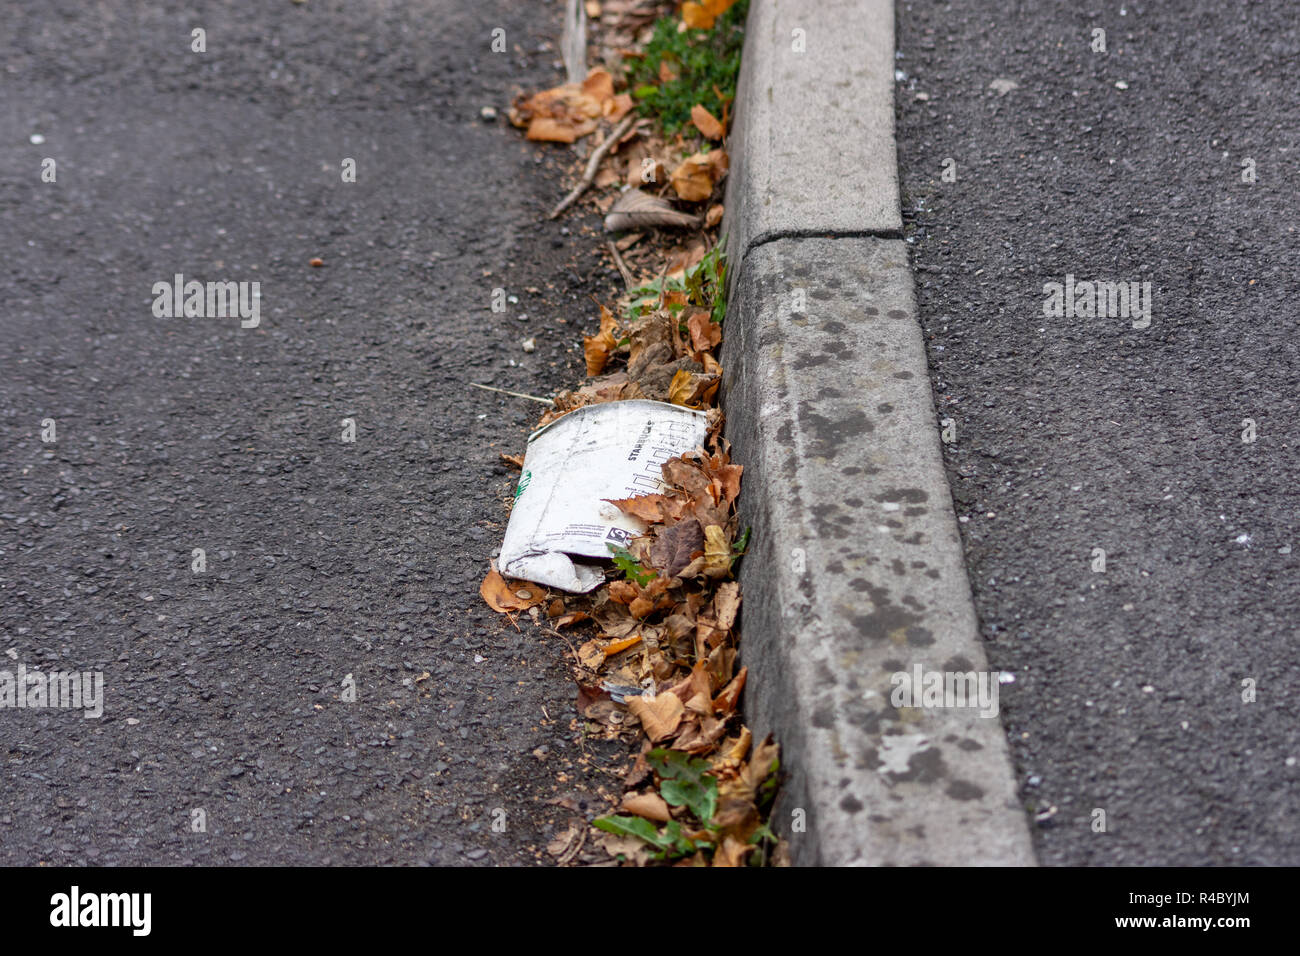 A flattened crushed discarded Starbucks cardboard takeaway cup that has been dropped as litter by the pavement kerbstones at the side of the road - Stock Image